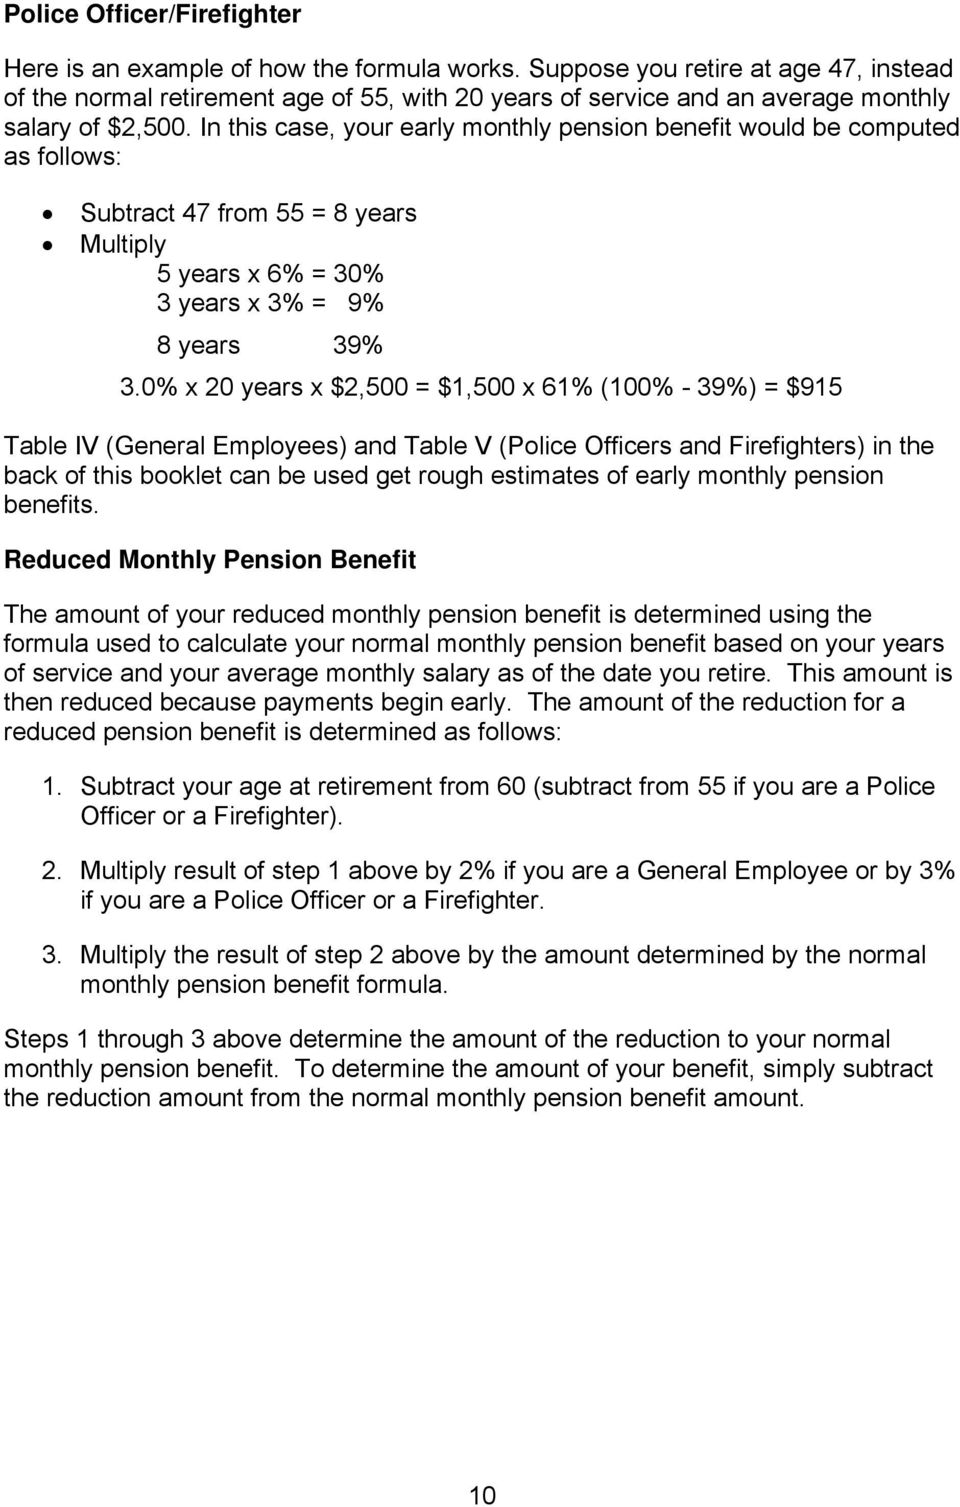 In this case, your early monthly pension benefit would be computed as follows: Subtract 47 from 55 = 8 years Multiply 5 years x 6% = 30% 3 years x 3% = 9% 8 years 39% 3.